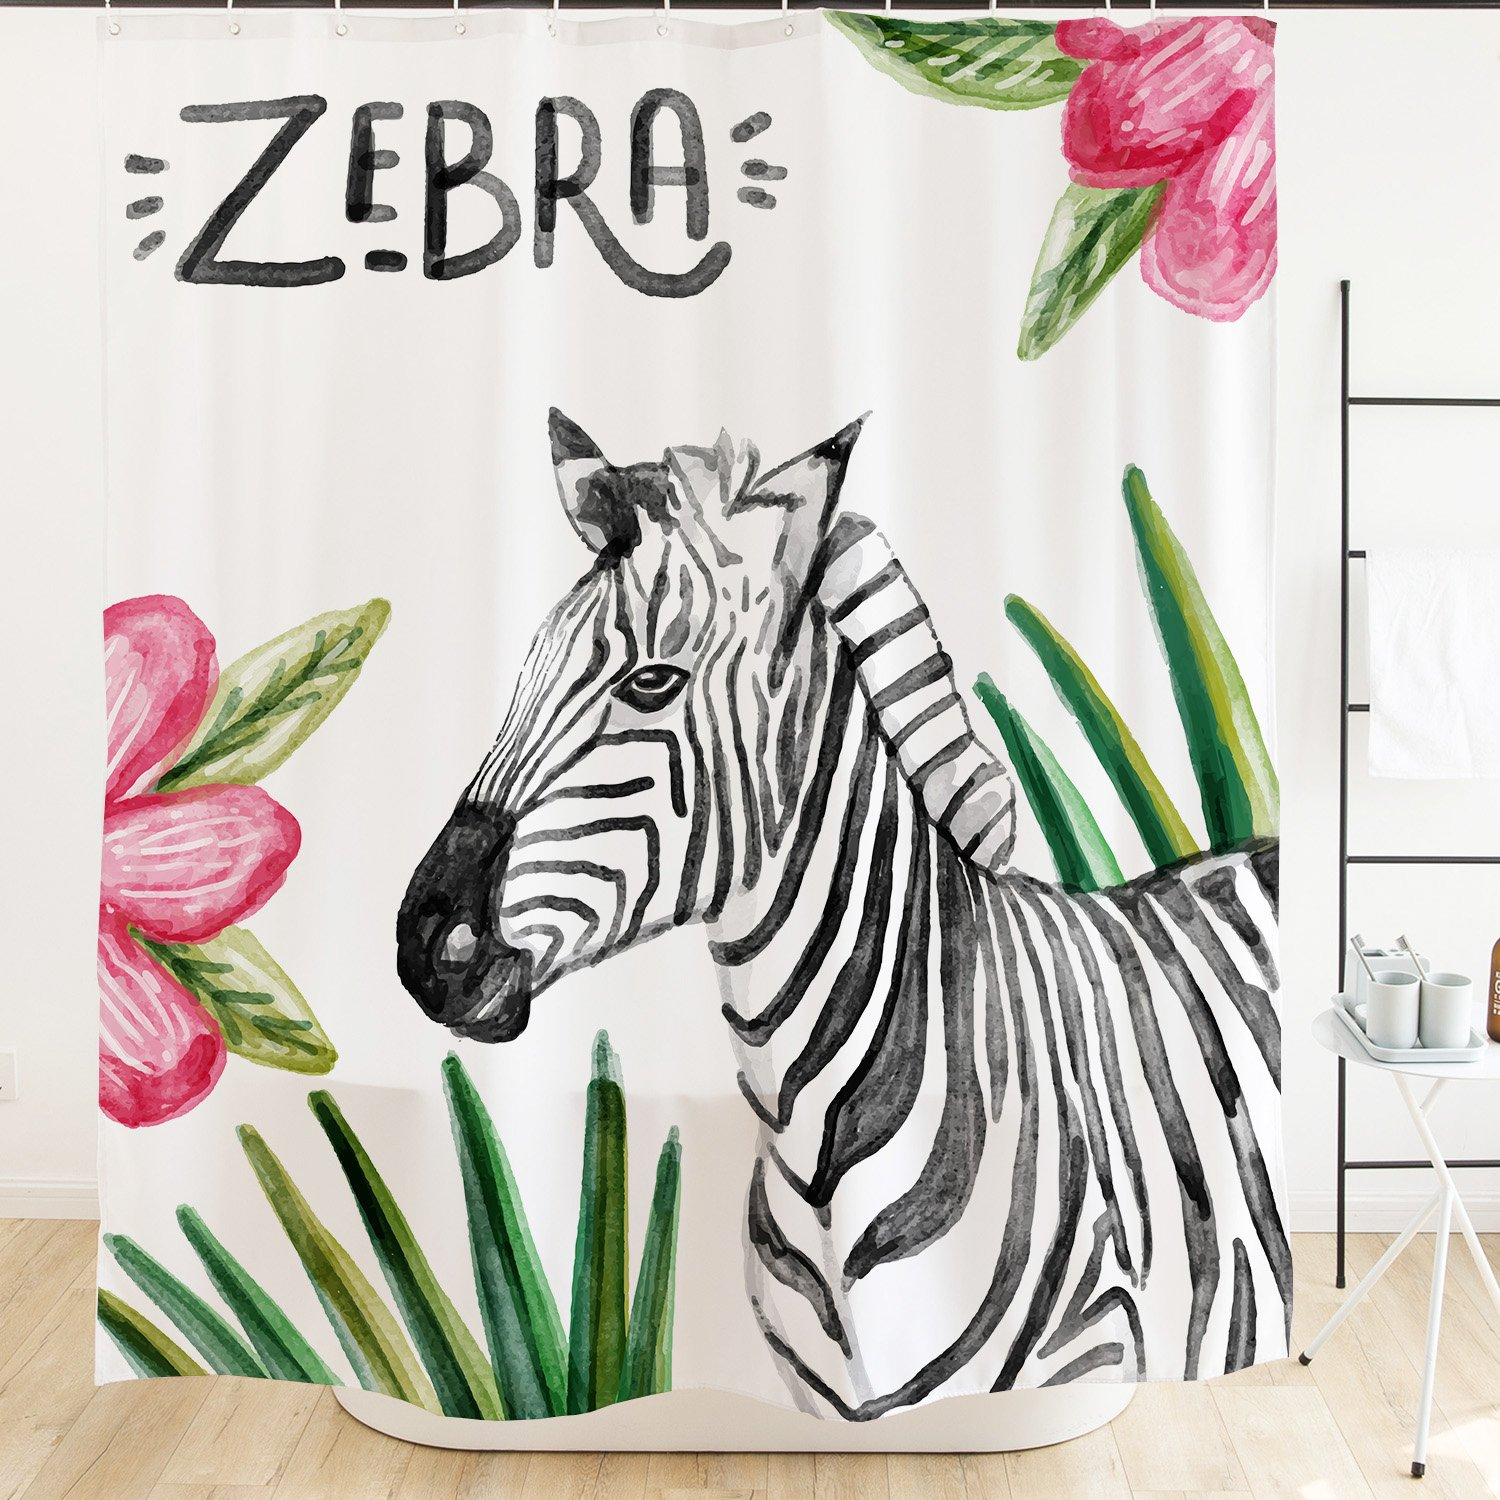 Ofat Home Animal Watercolor Zebra Shower Curtain Hooks 71x71 Tropical Leaves Pink Flowers Black White Mildew Resistant Fabric Kids Bathroom Decor